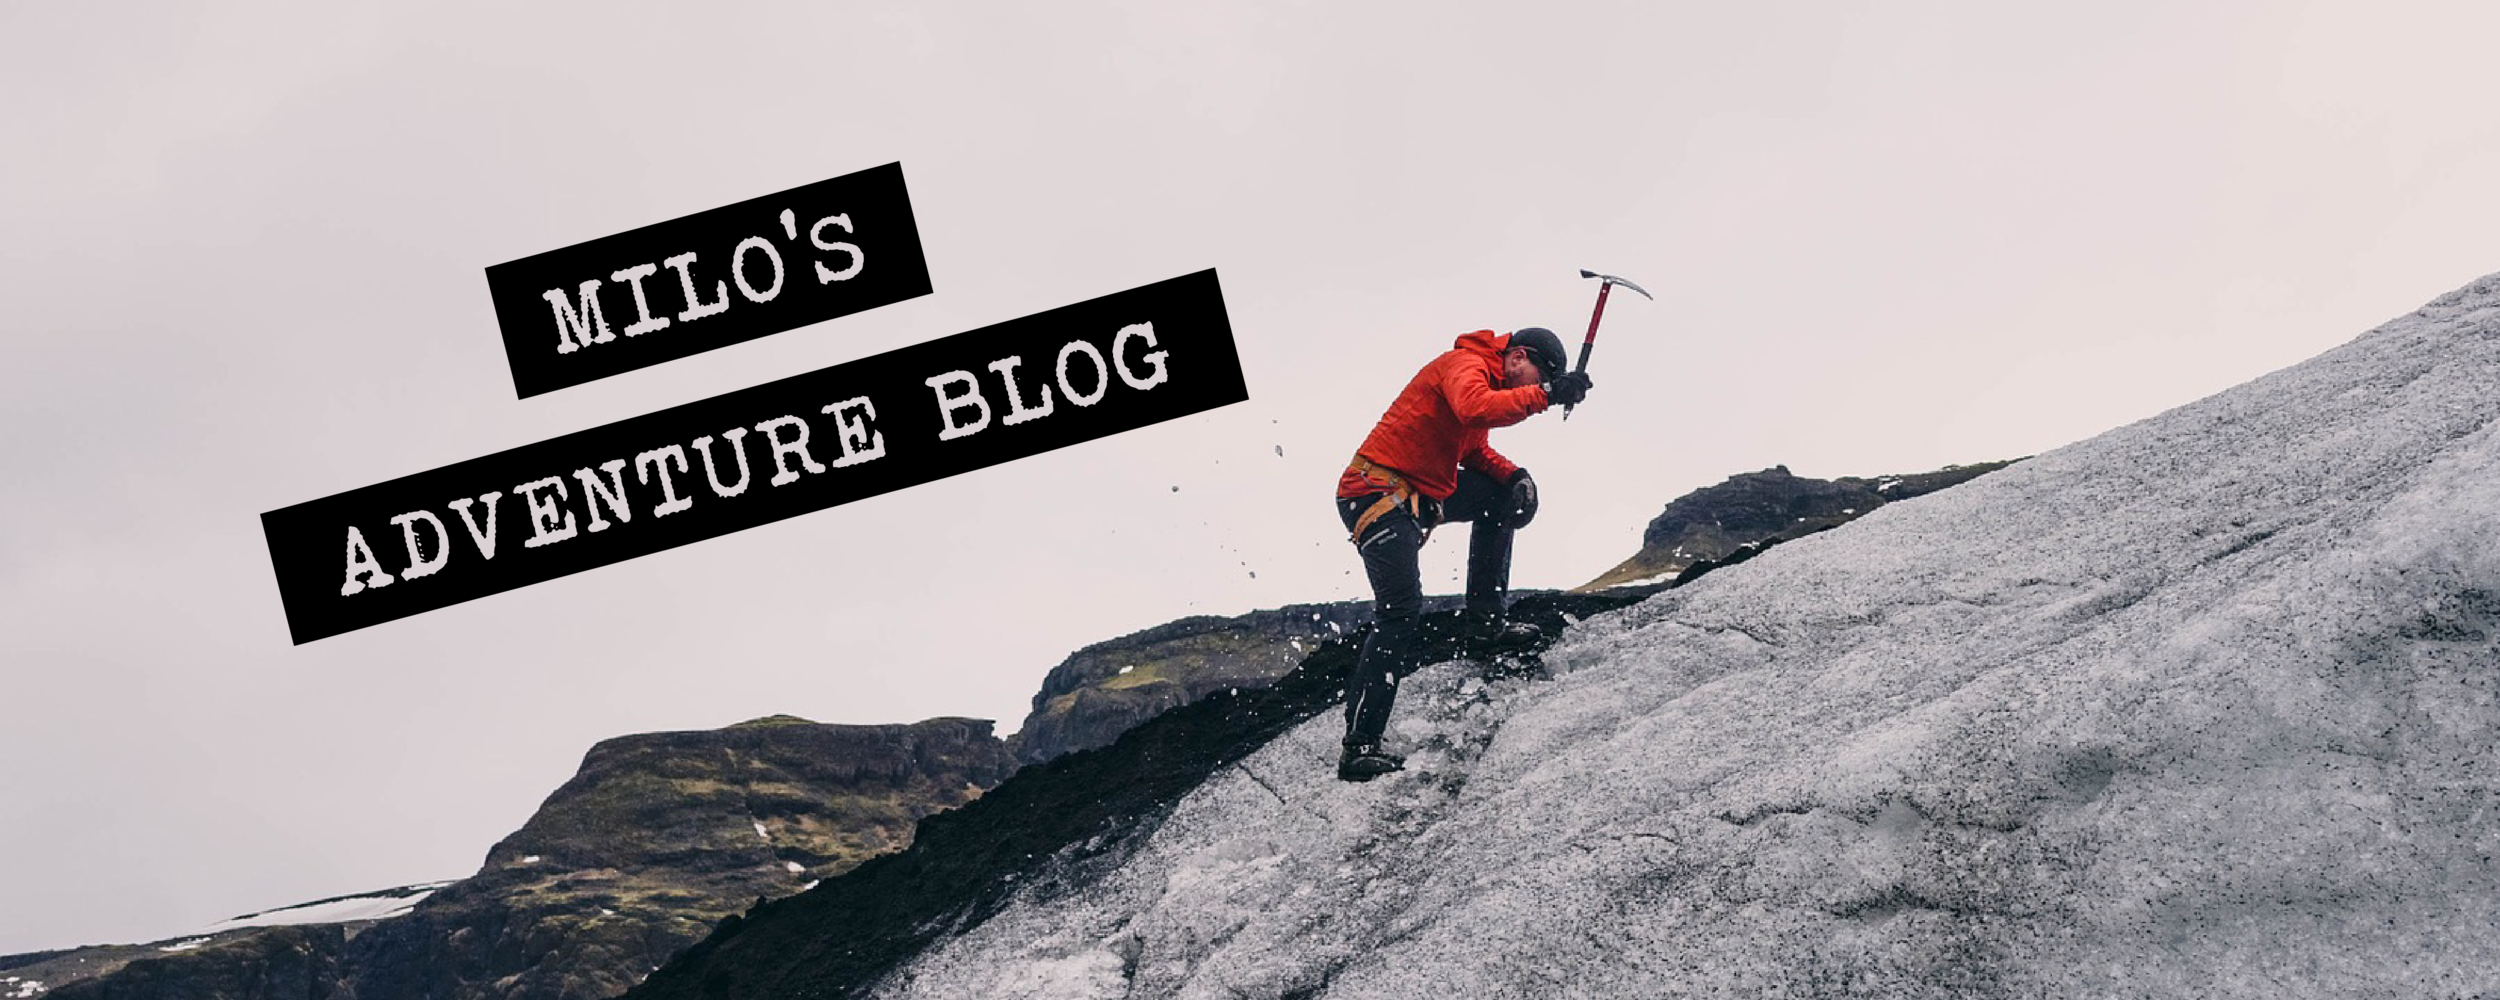 The picture is the focus in this blog header perfect for travelers and adventurers.